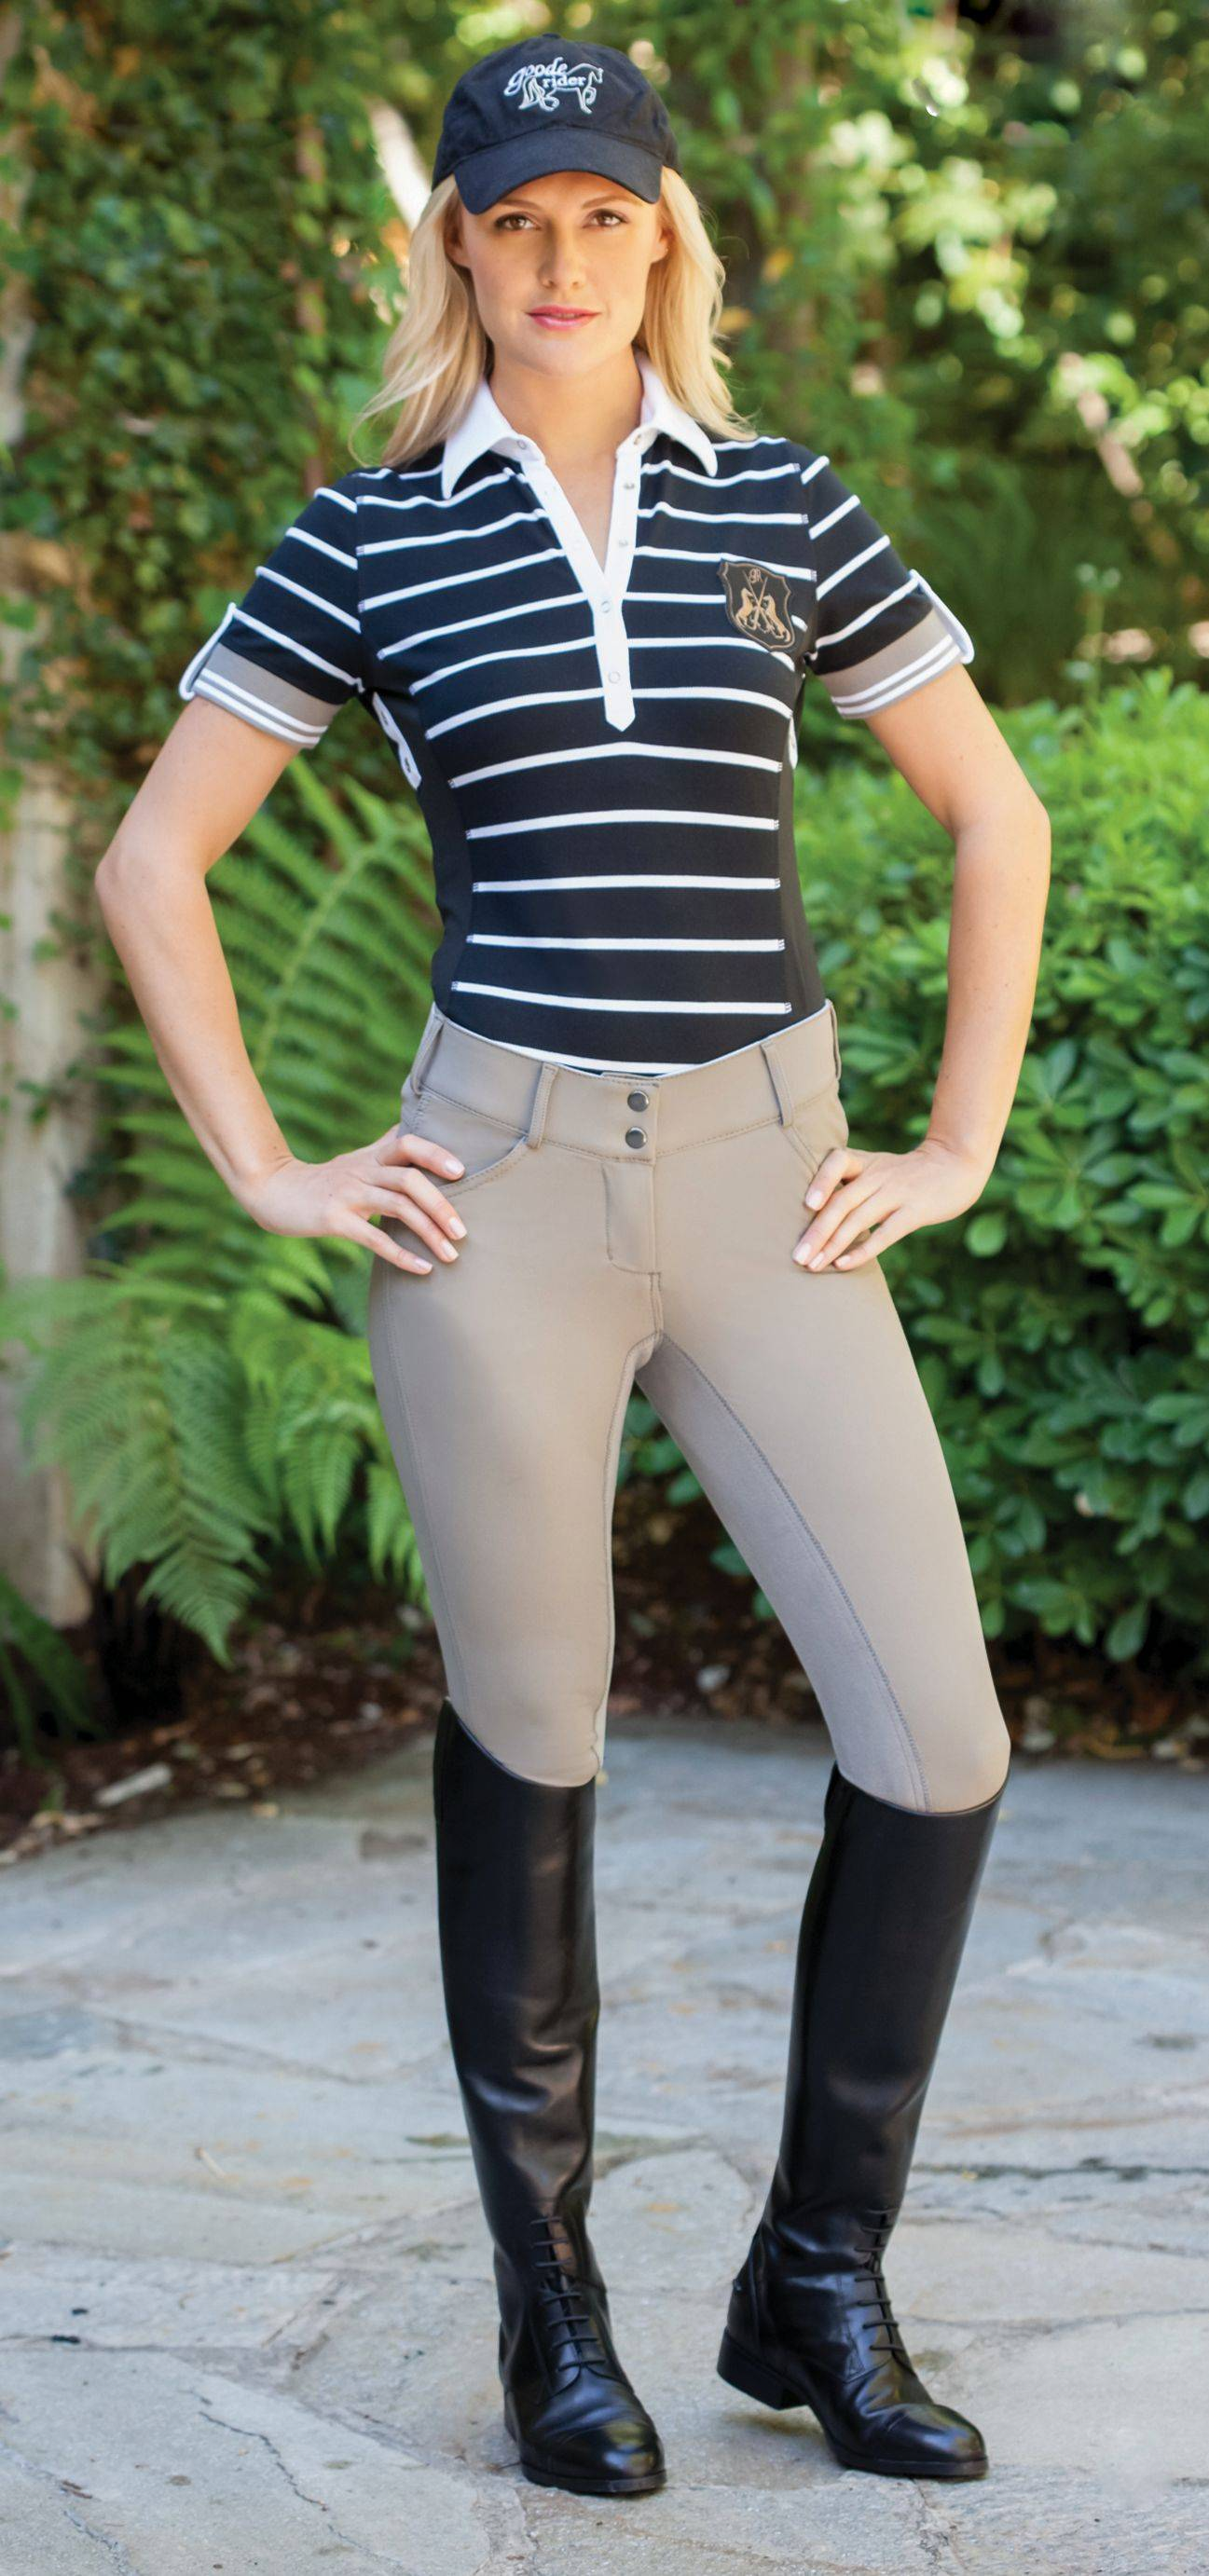 Goode Rider Perfect Fit Breeches - Ladies, Full Seat